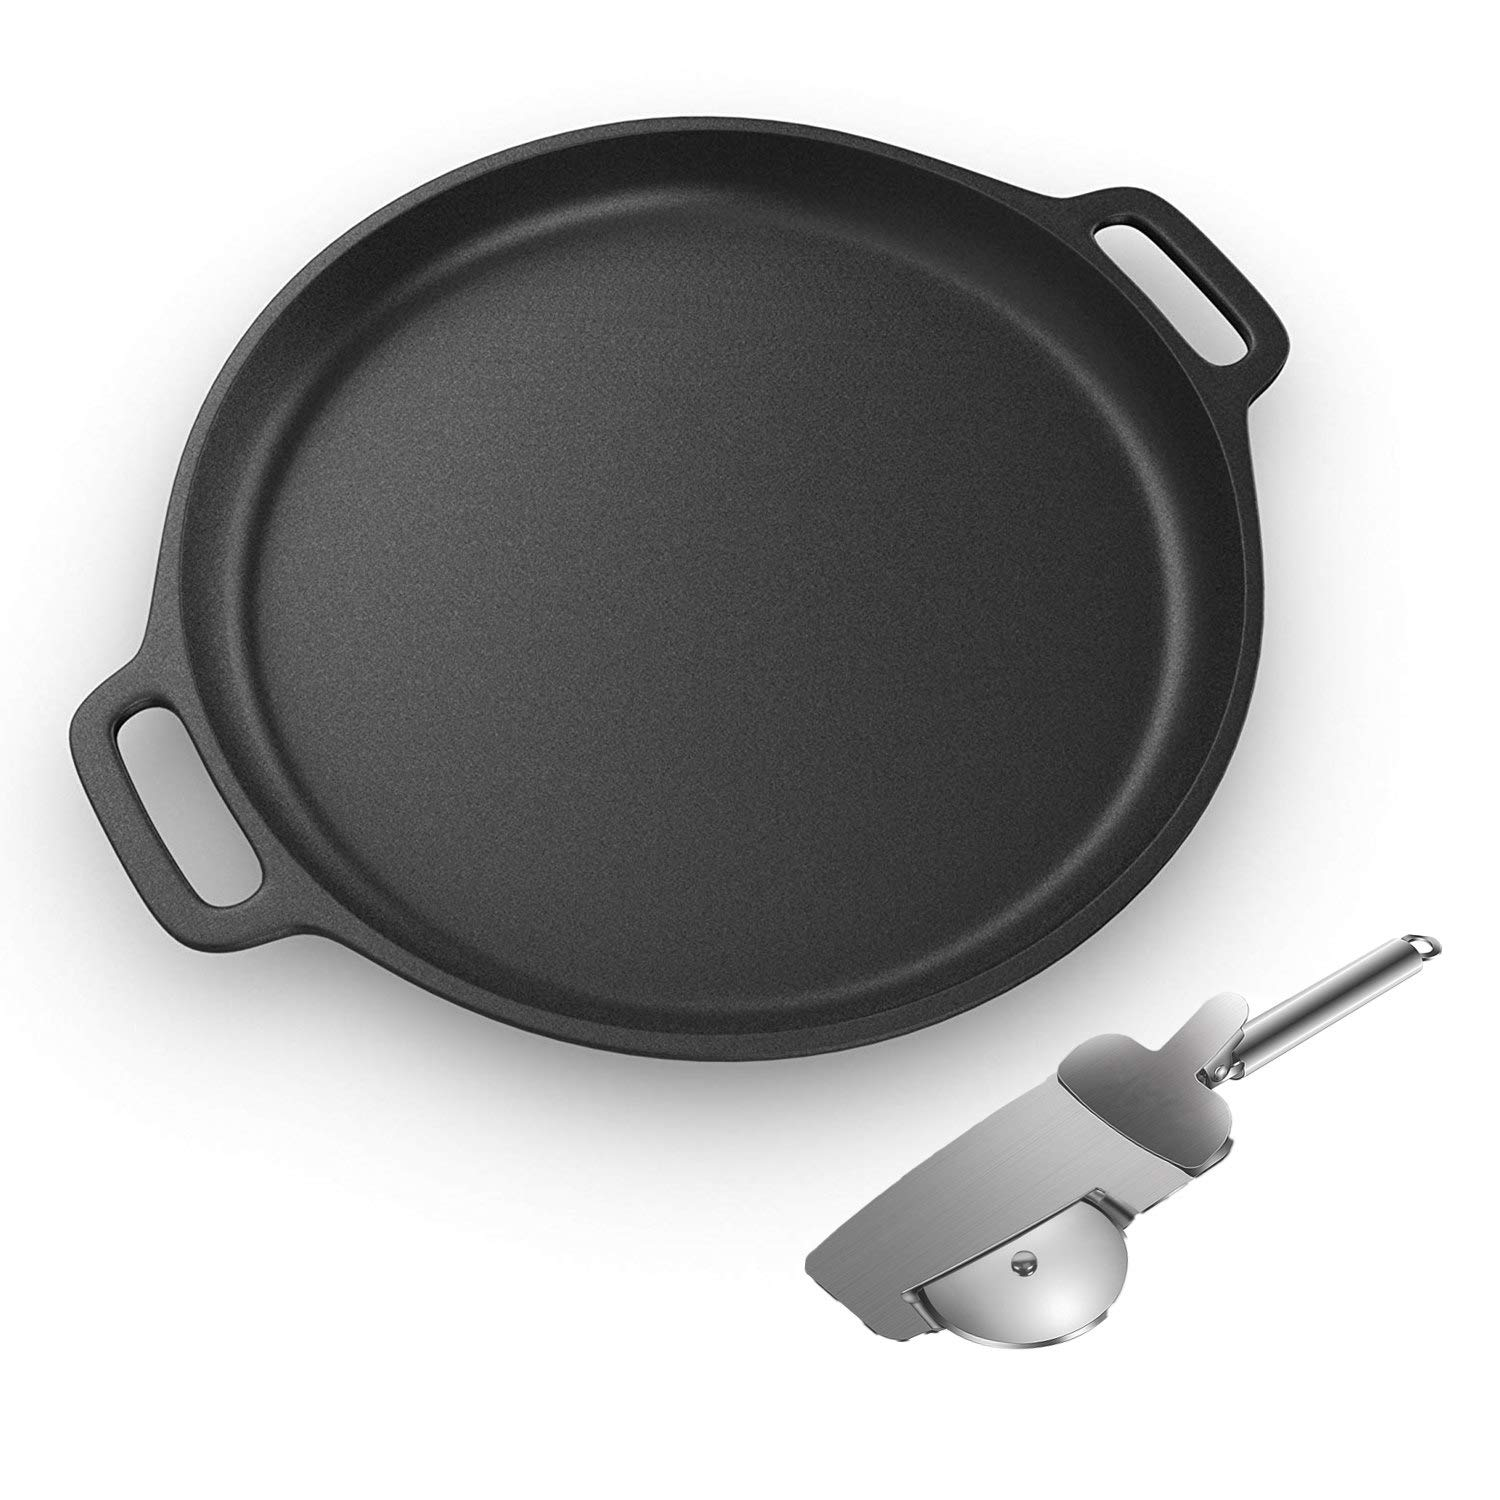 Pre-Seasoned Cast Iron Pizza and Baking Pan With 4 in 1 Pizza Cutter Wheel -13.5 inch Round Nonstick Skillet Pan For Grill,Stove, Oven or Campfire